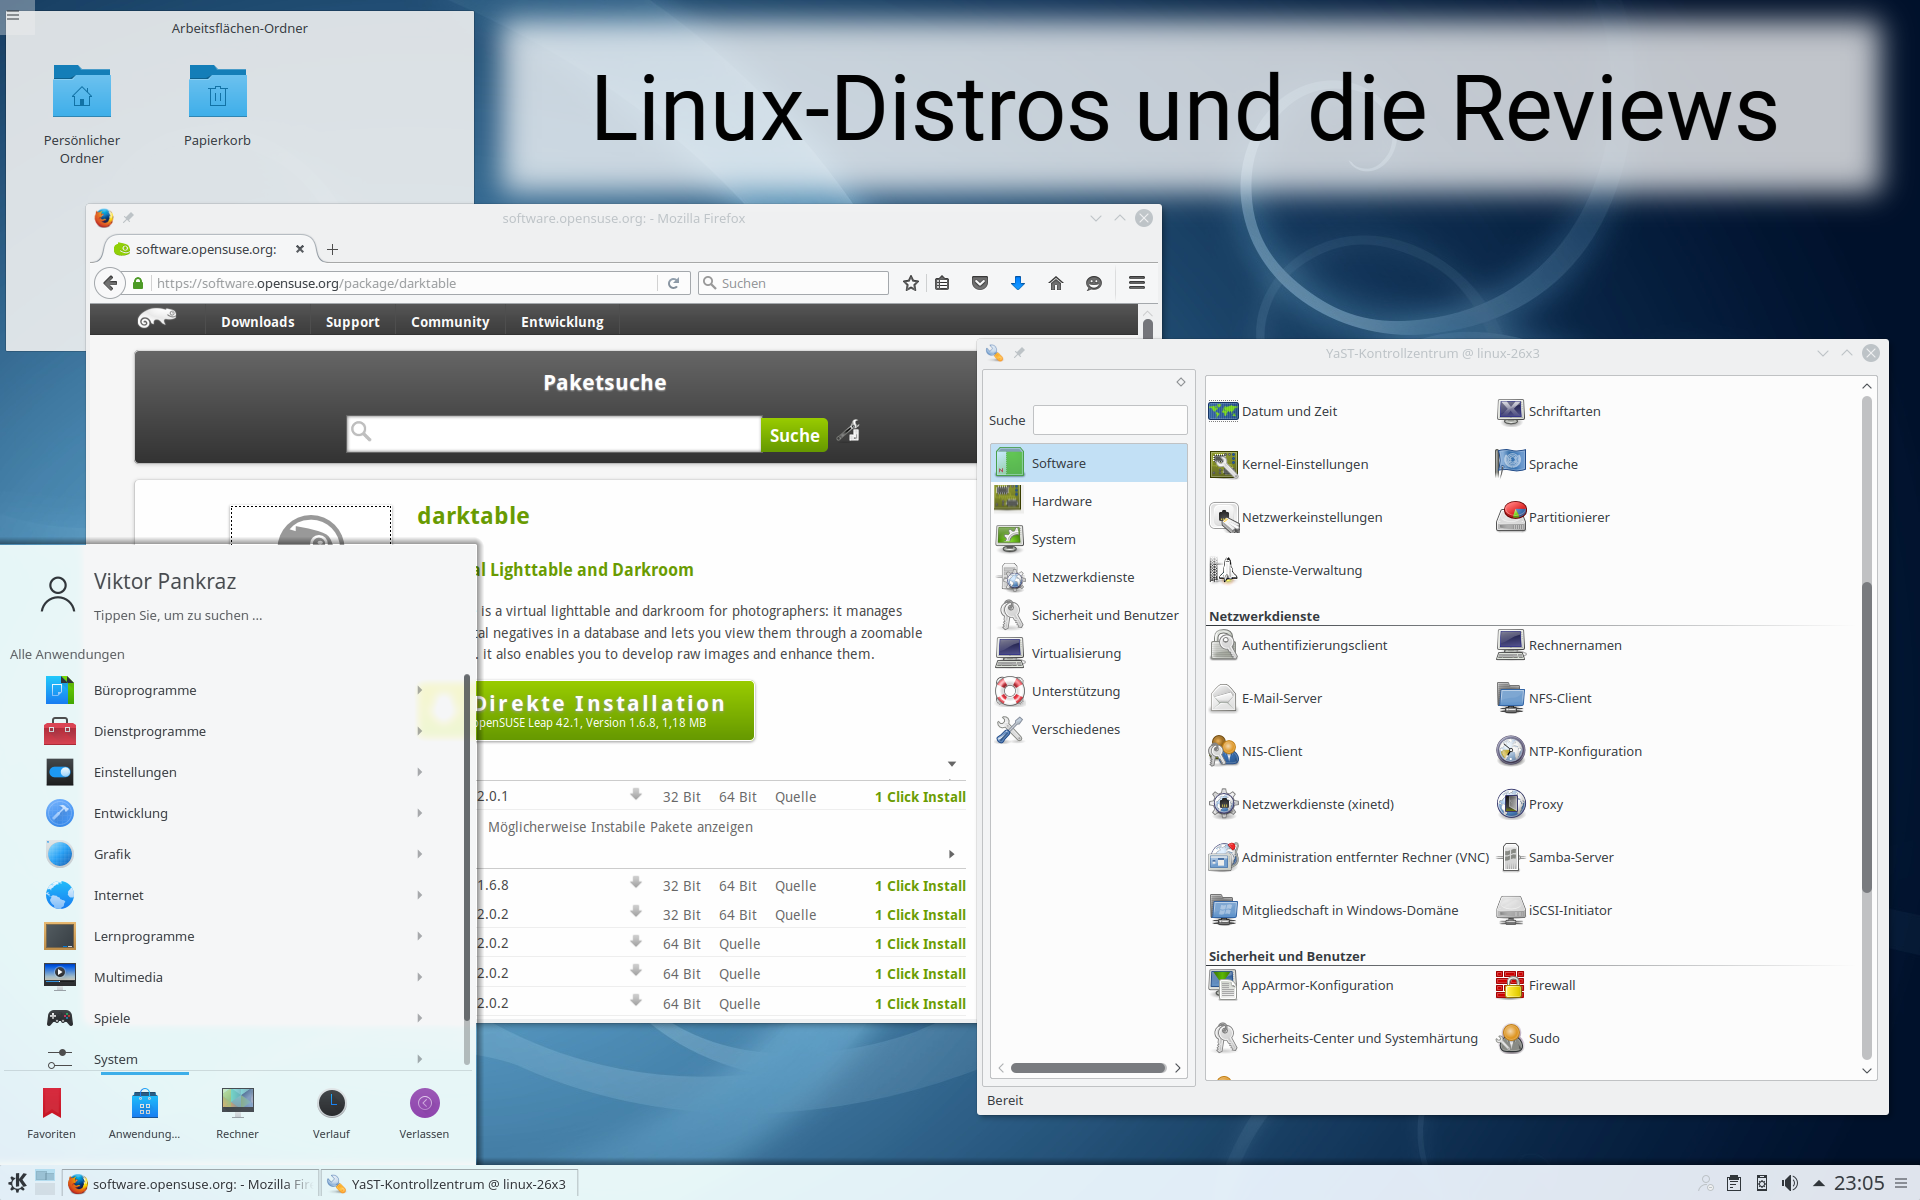 Linux-Distros und die Reviews